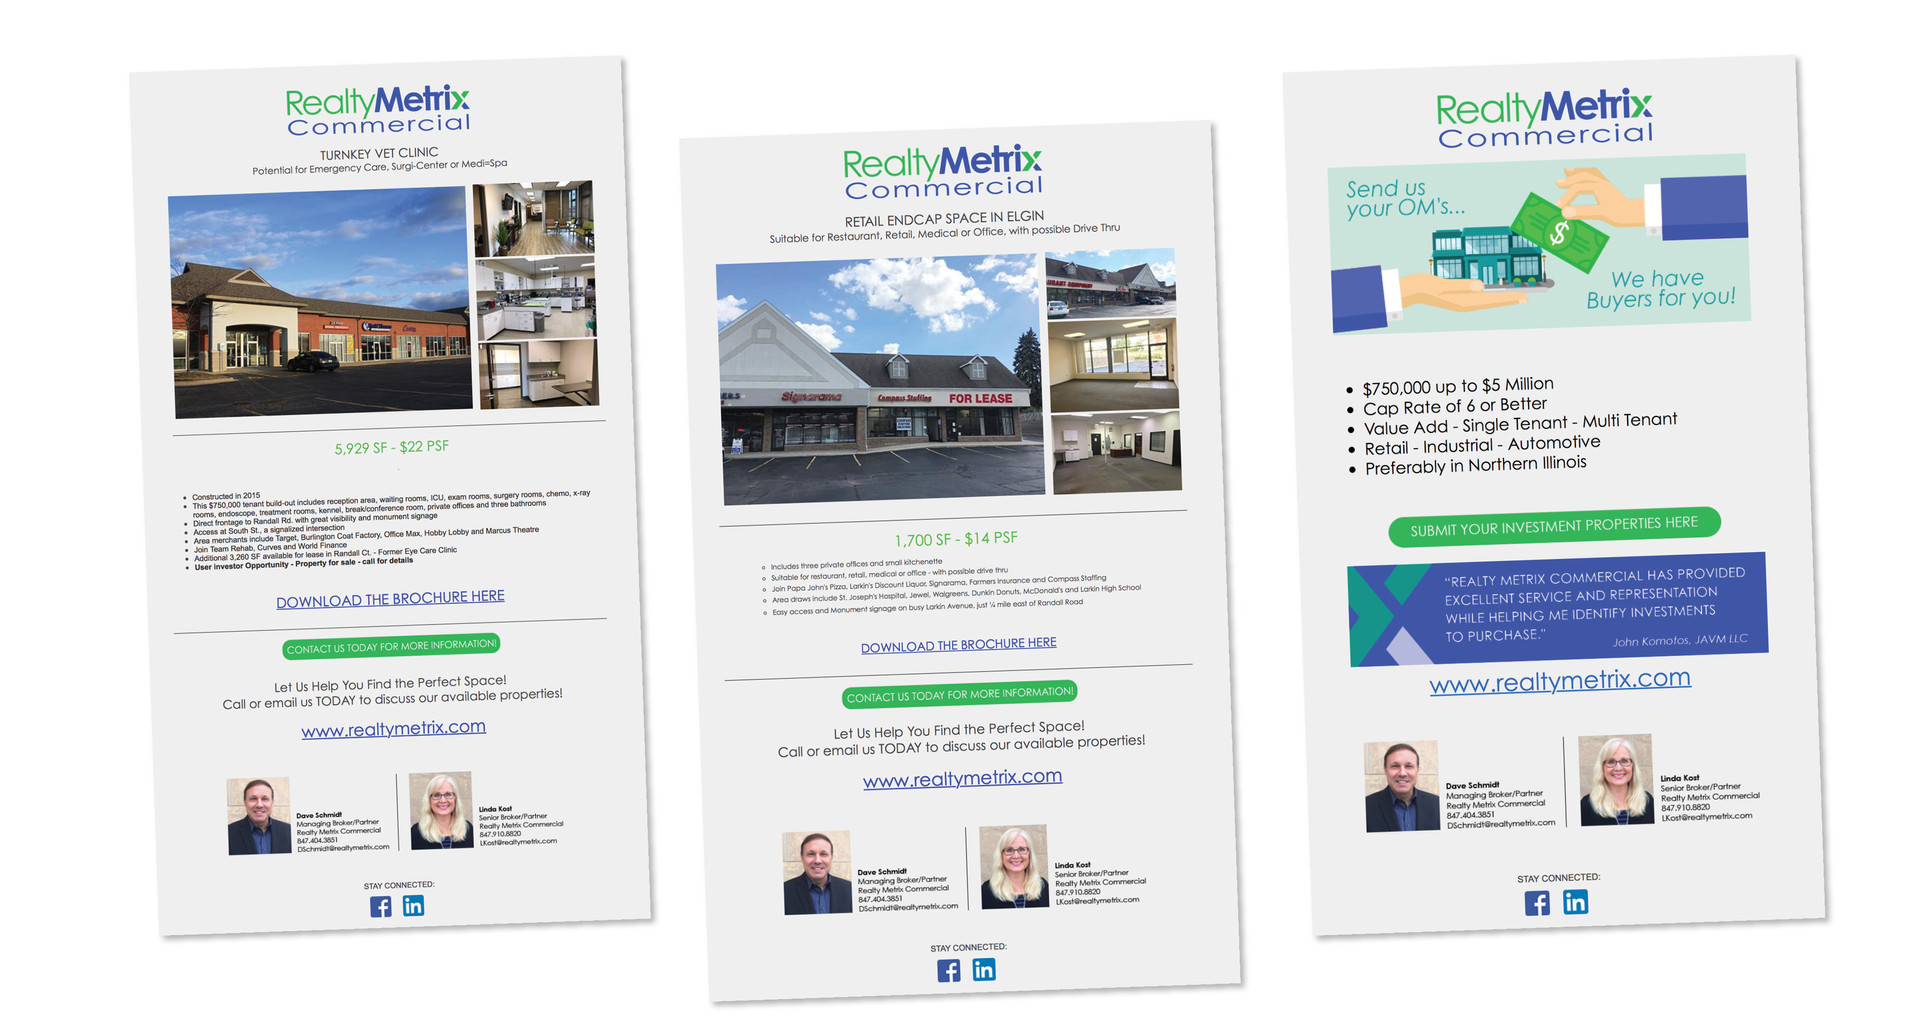 Realty Metrix Commercial Email Series